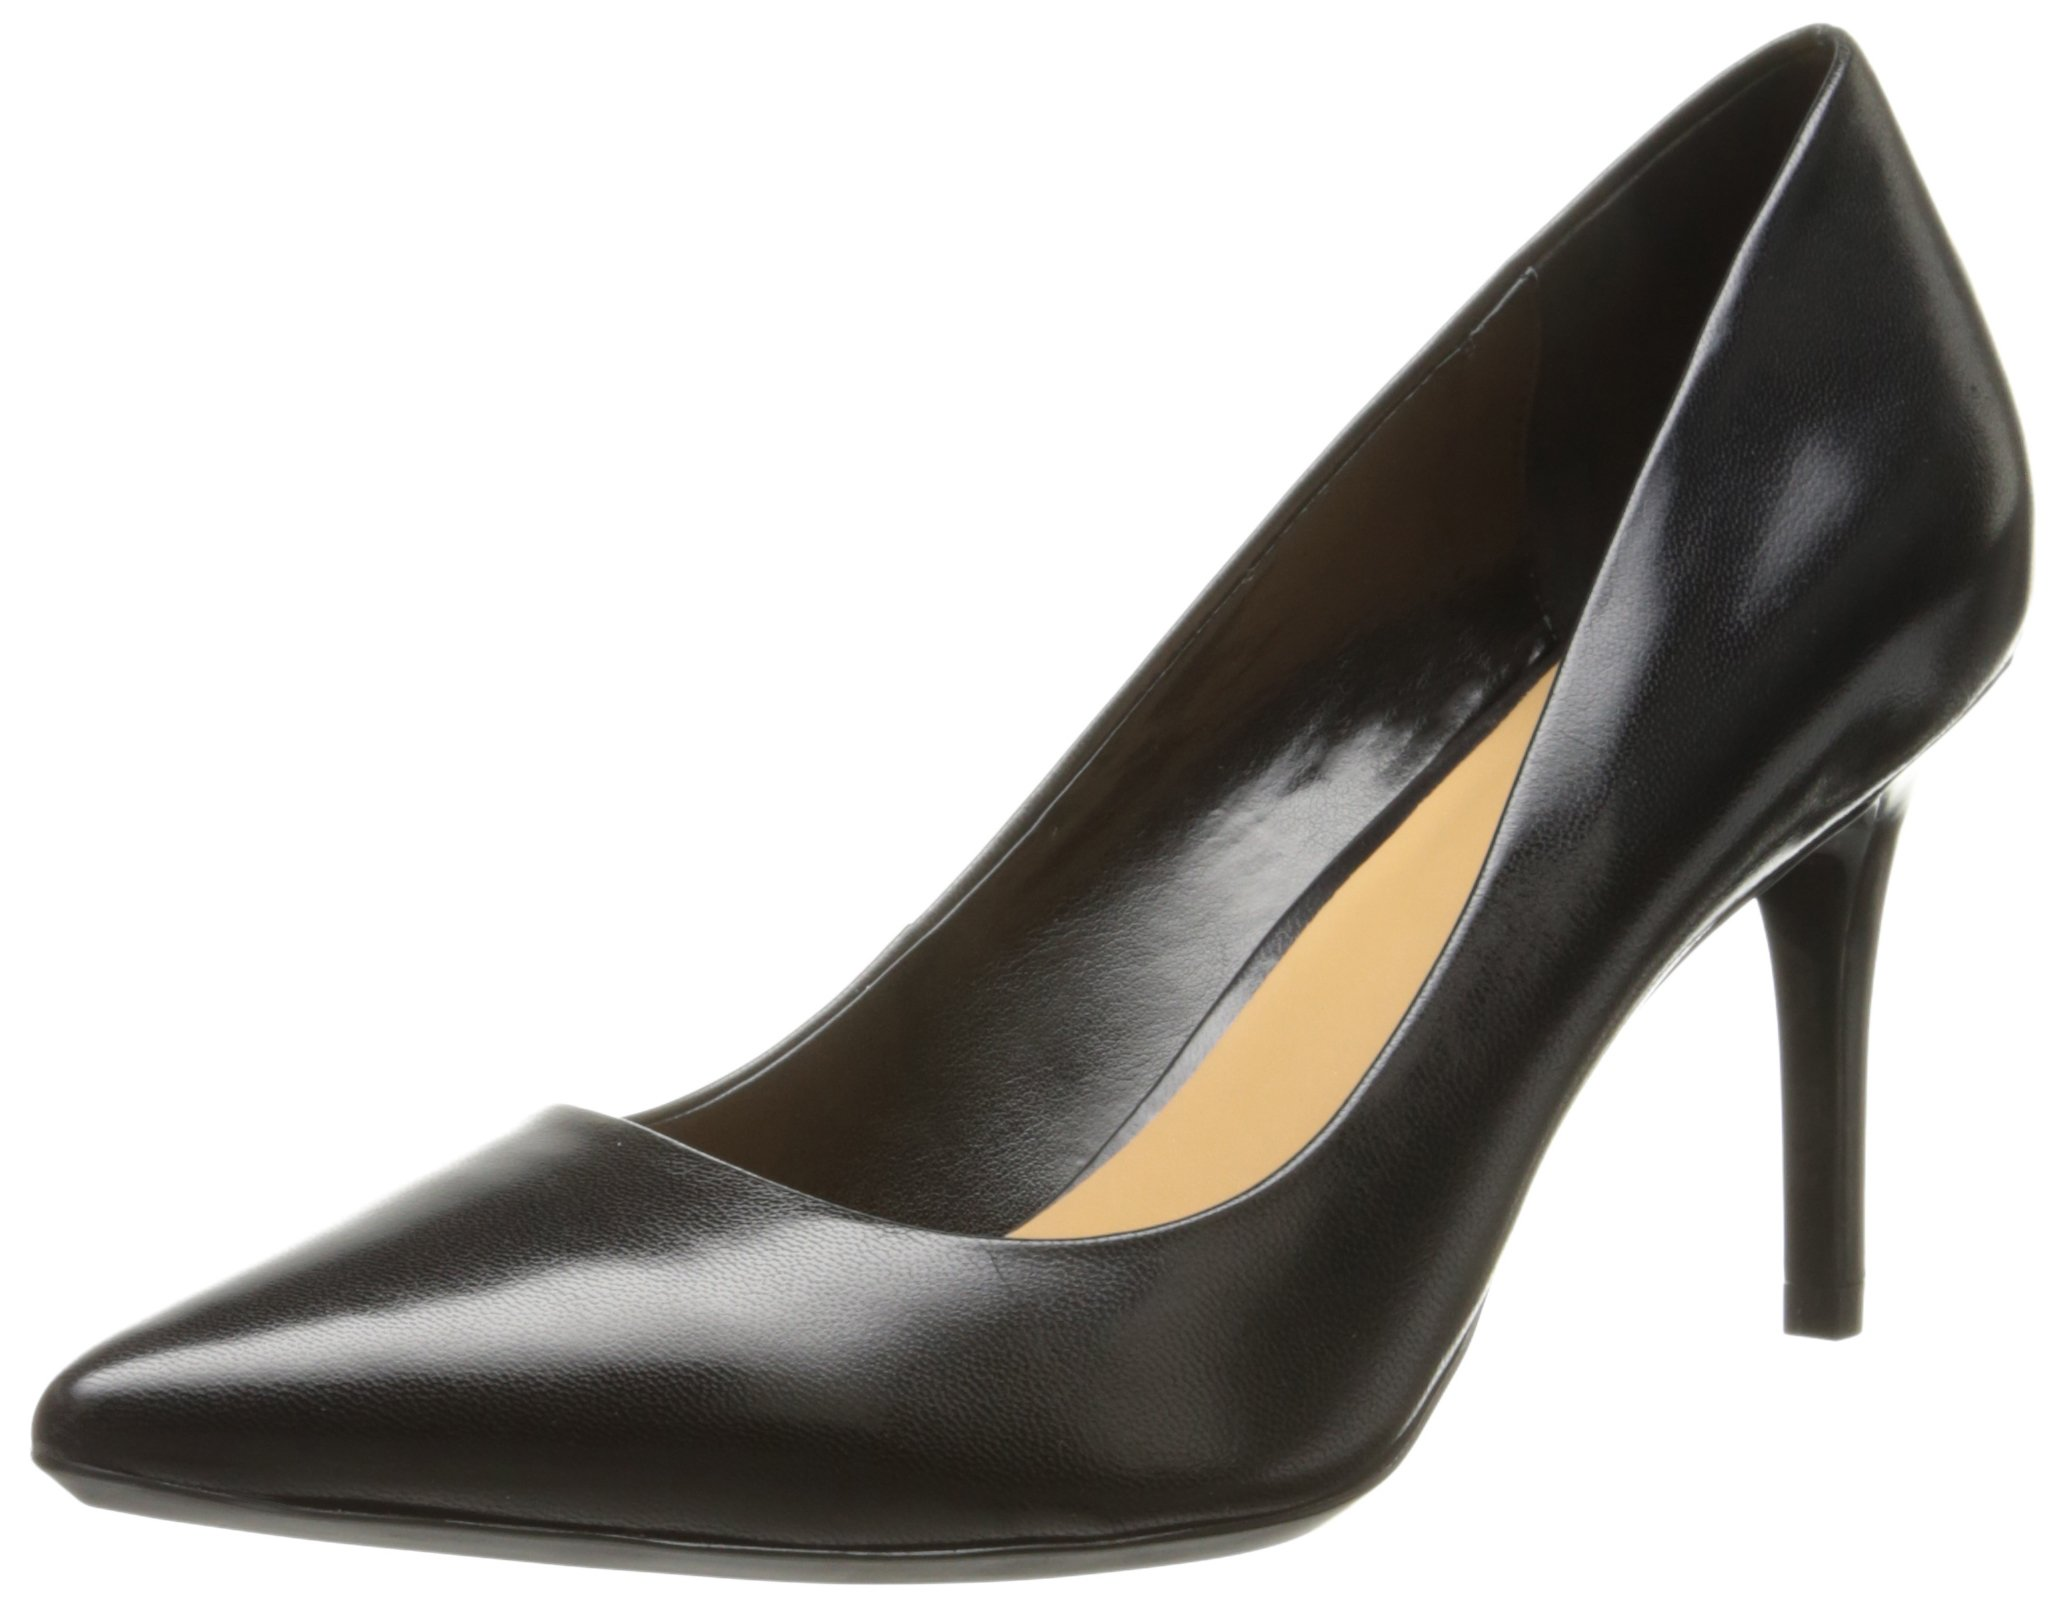 Calvin Klein Women's Gayle Pump, Black Patent Pump - 9 B(M) US